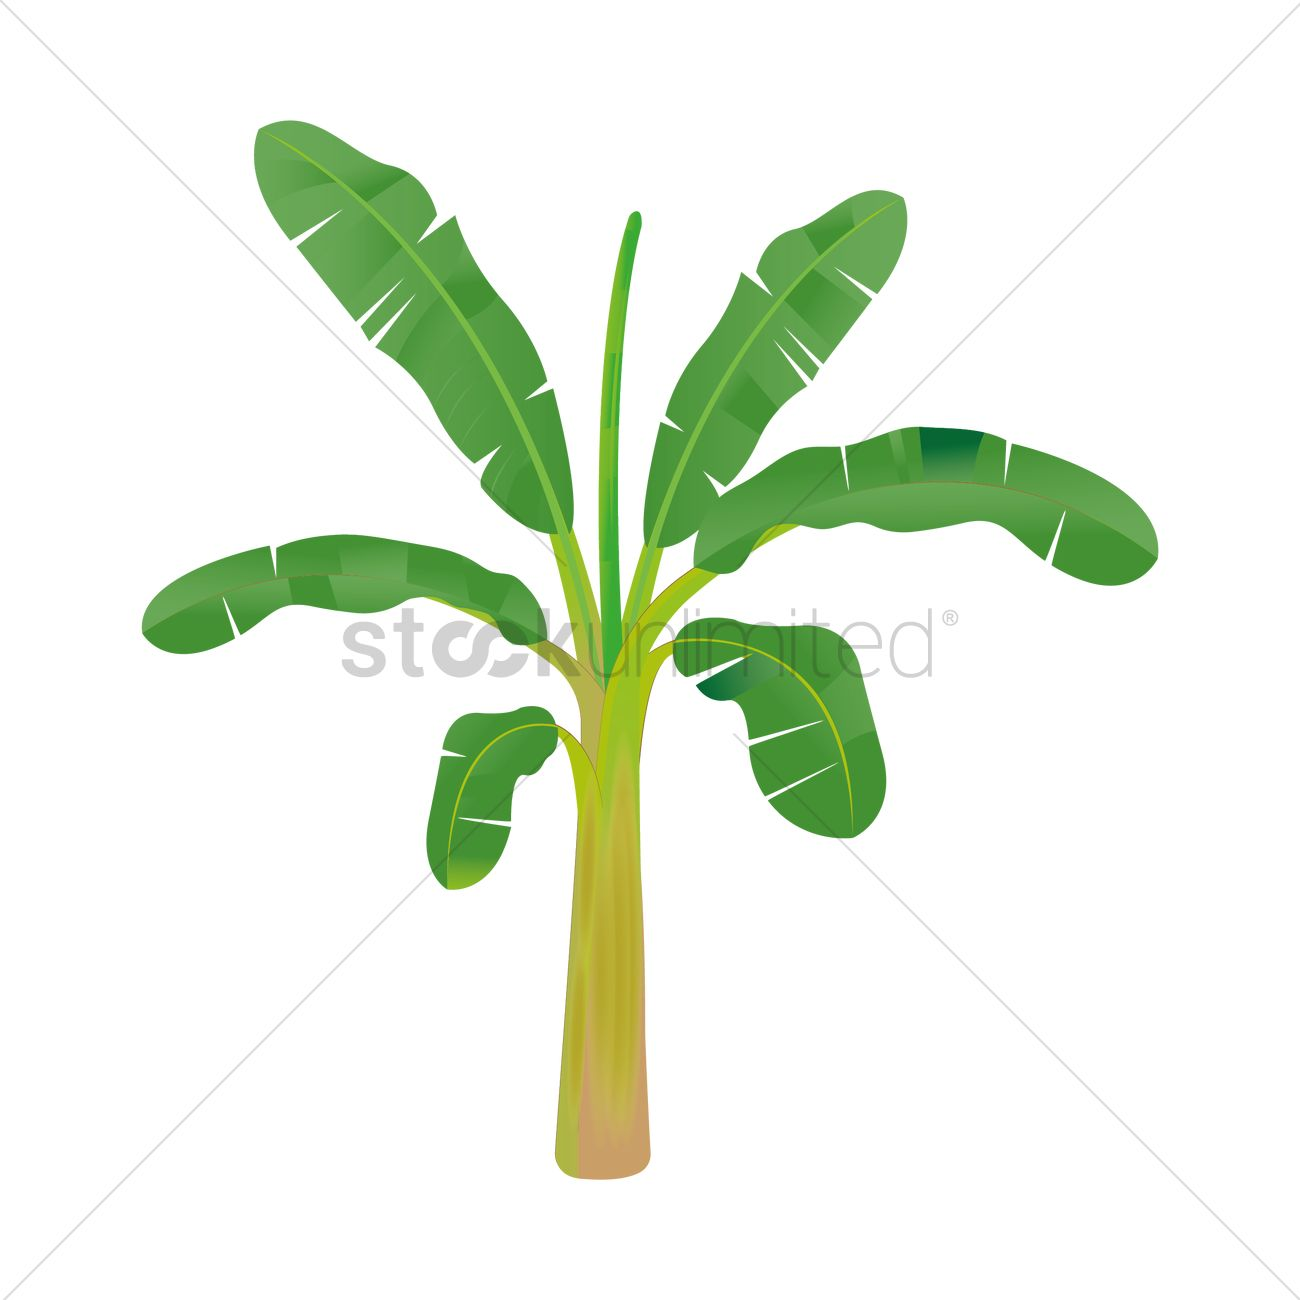 banana tree vector image 1935823 stockunlimited rh stockunlimited com banana tree leaves clip art banana tree clipart black and white